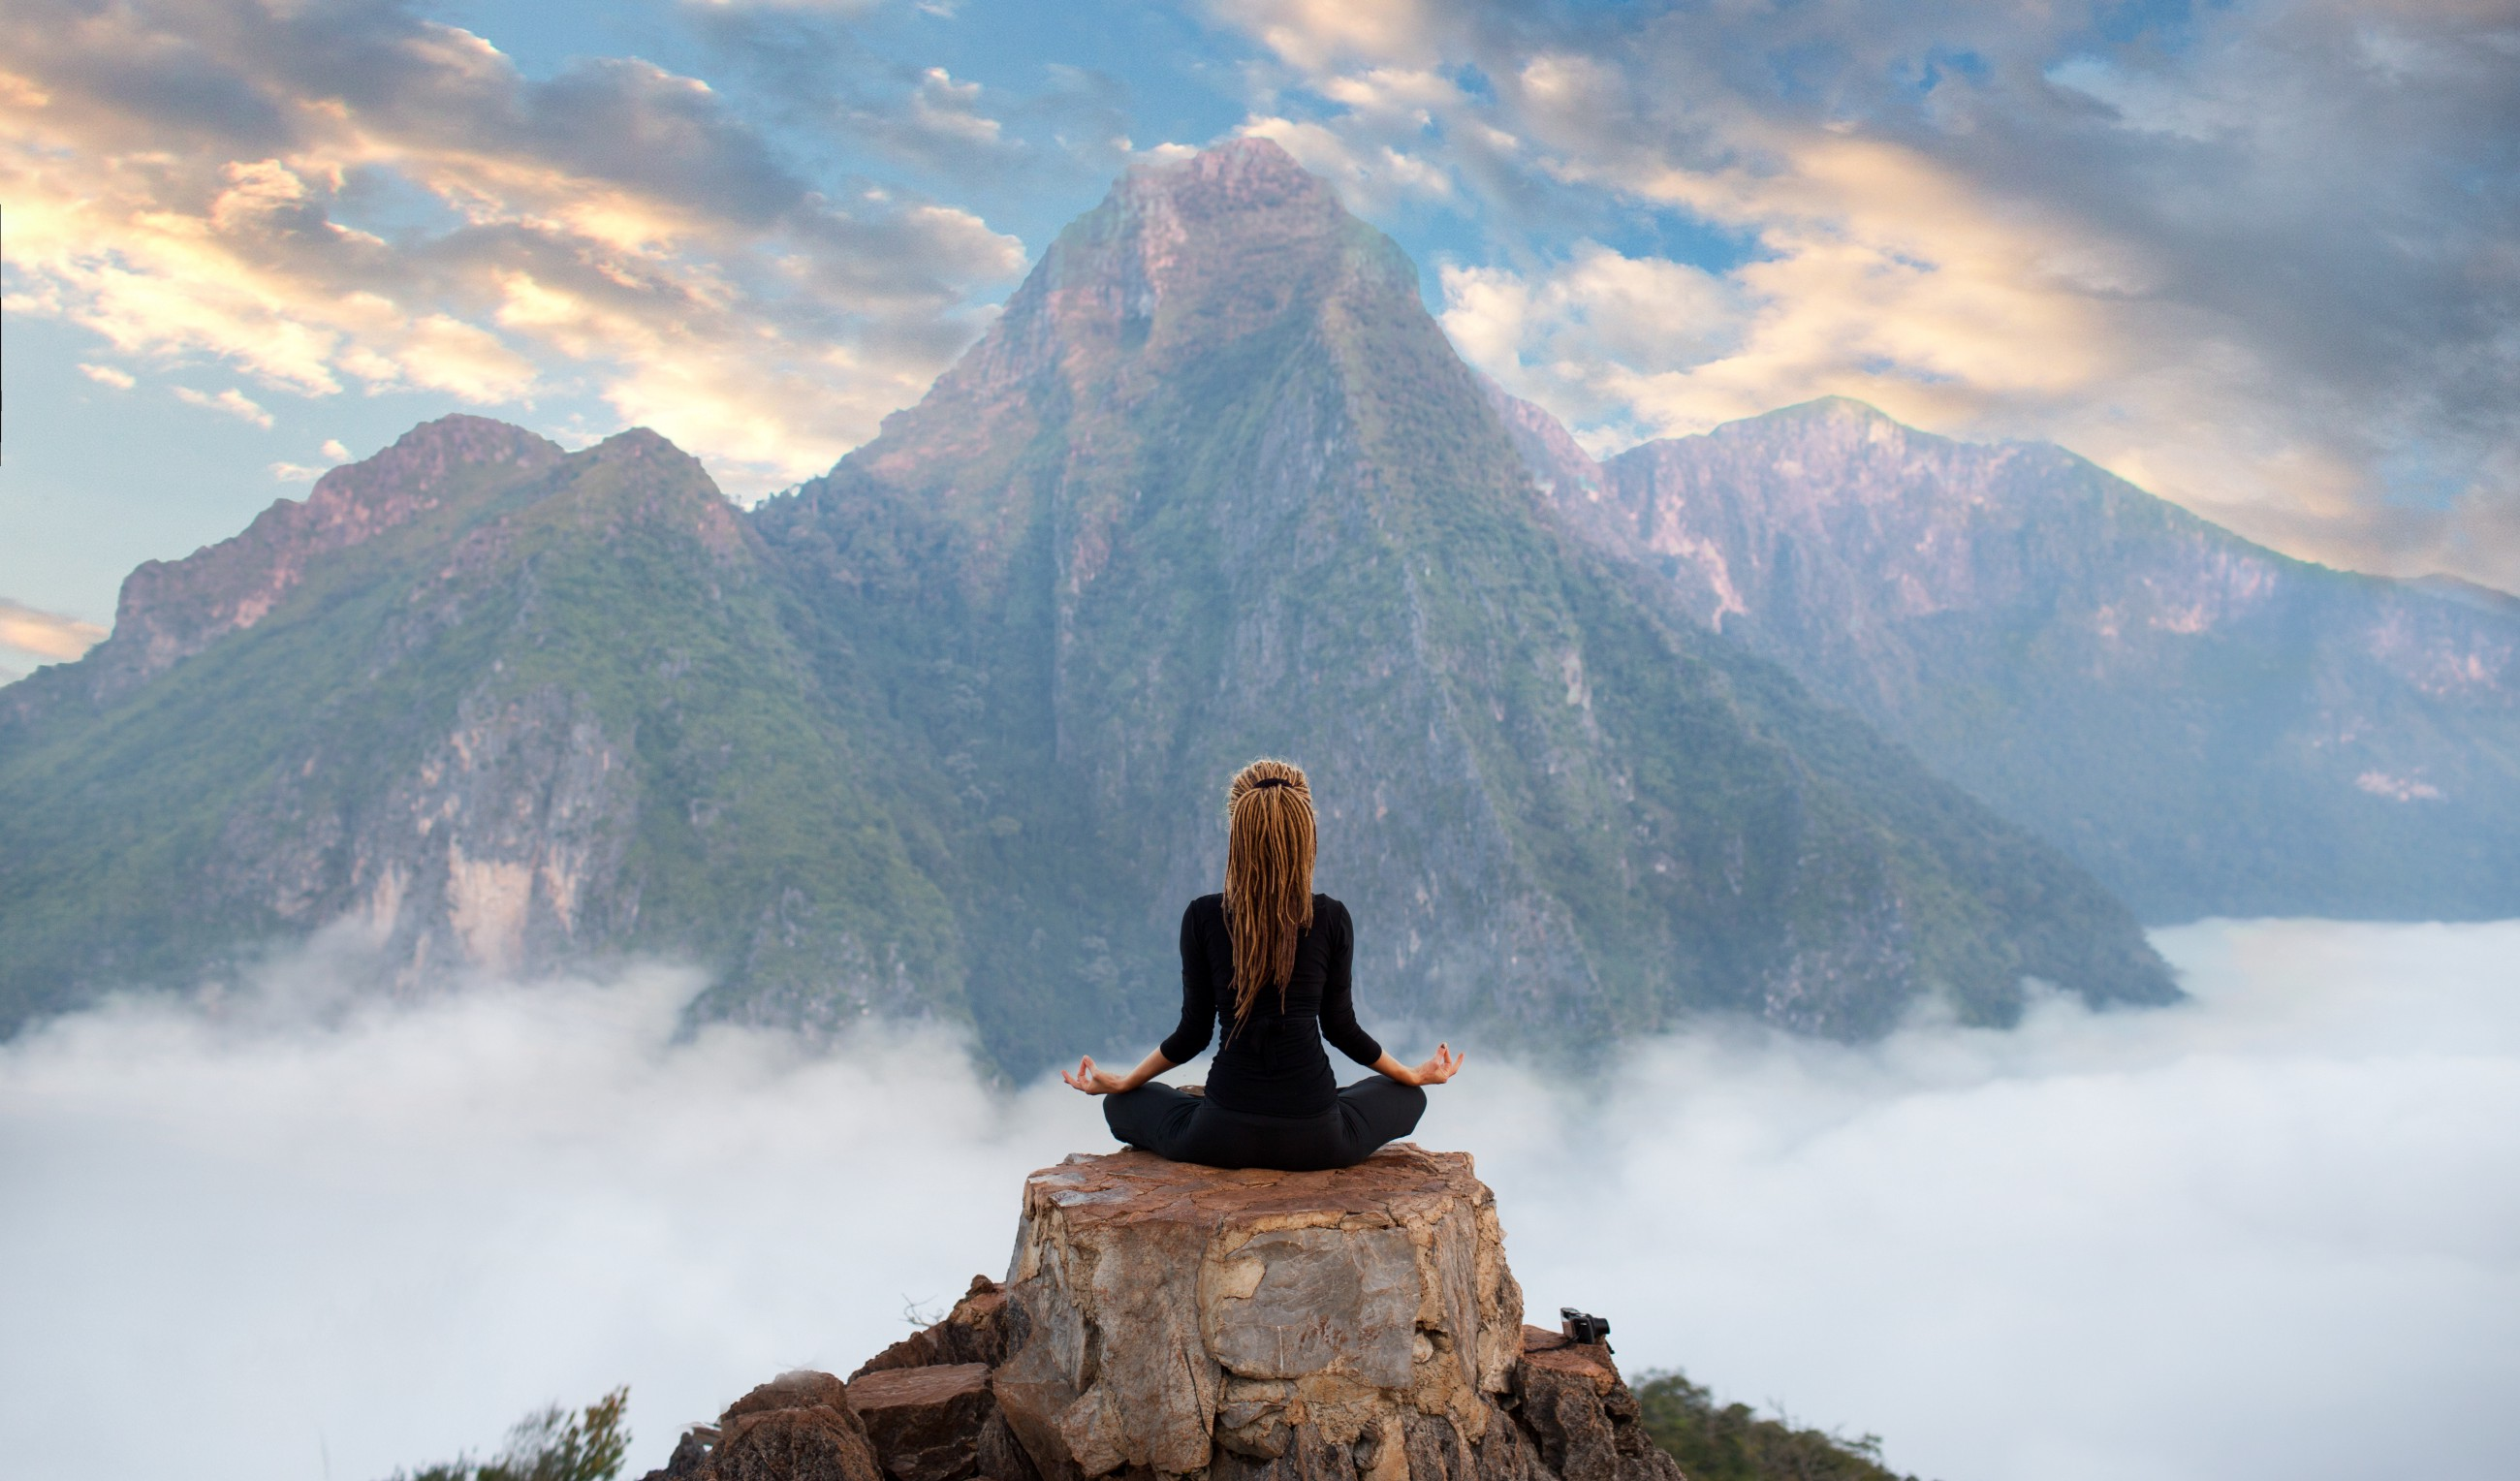 Woman meditating at the peak of mountain with other mountains around her.